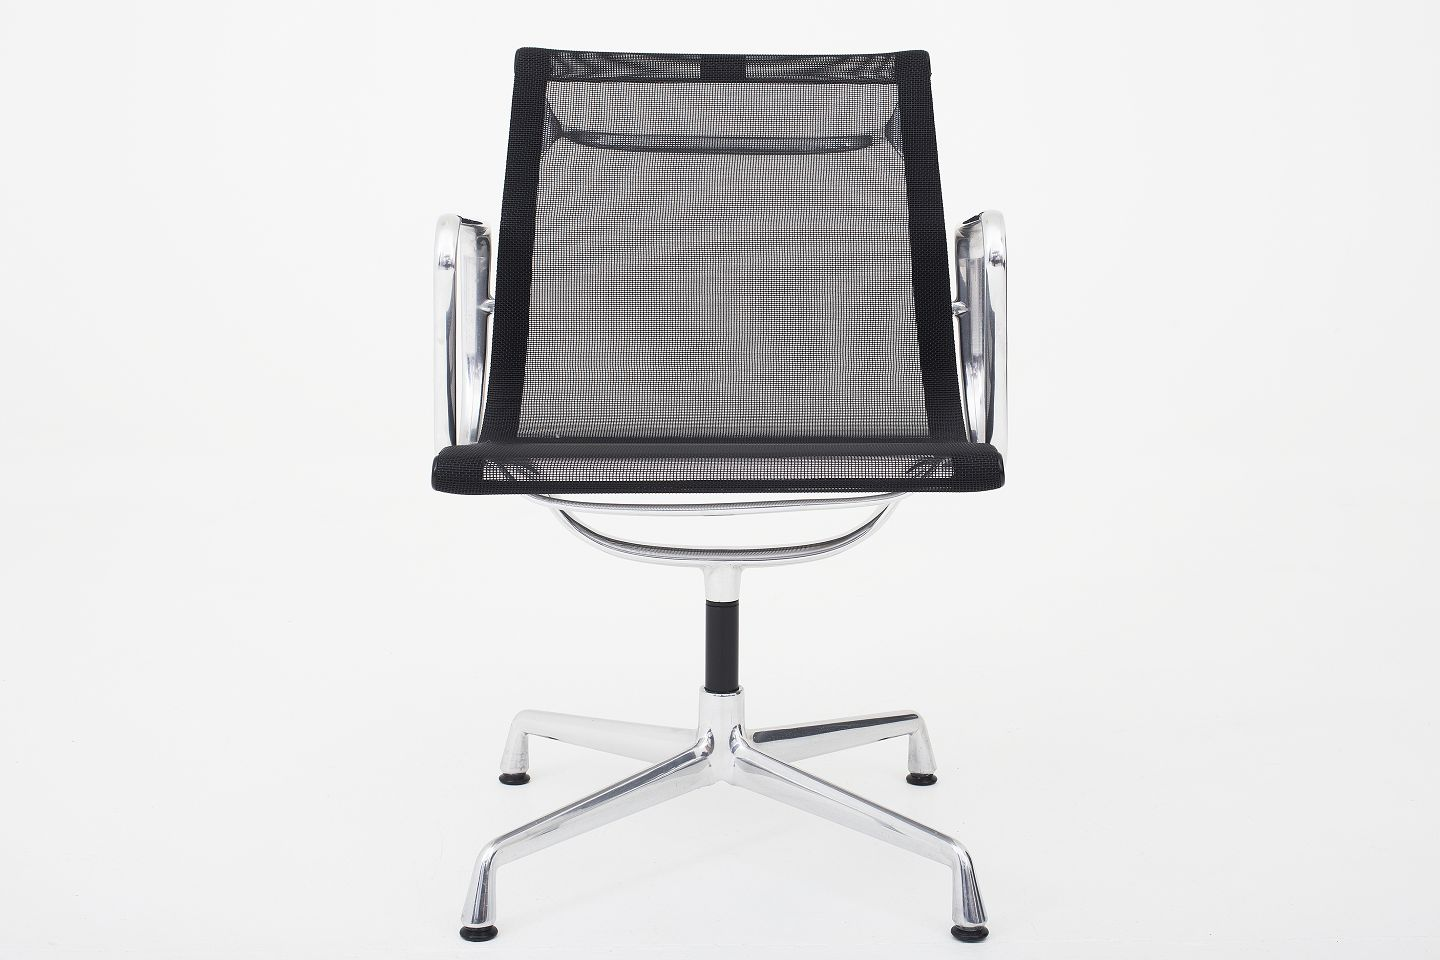 Eames Vitra Ray Charles Eames Vitra Ea 108 Chair Net Weave 4 In Stock Good Condition Showed At Klassik Bredgade 3 1260 Copenhagen C Telephone 45